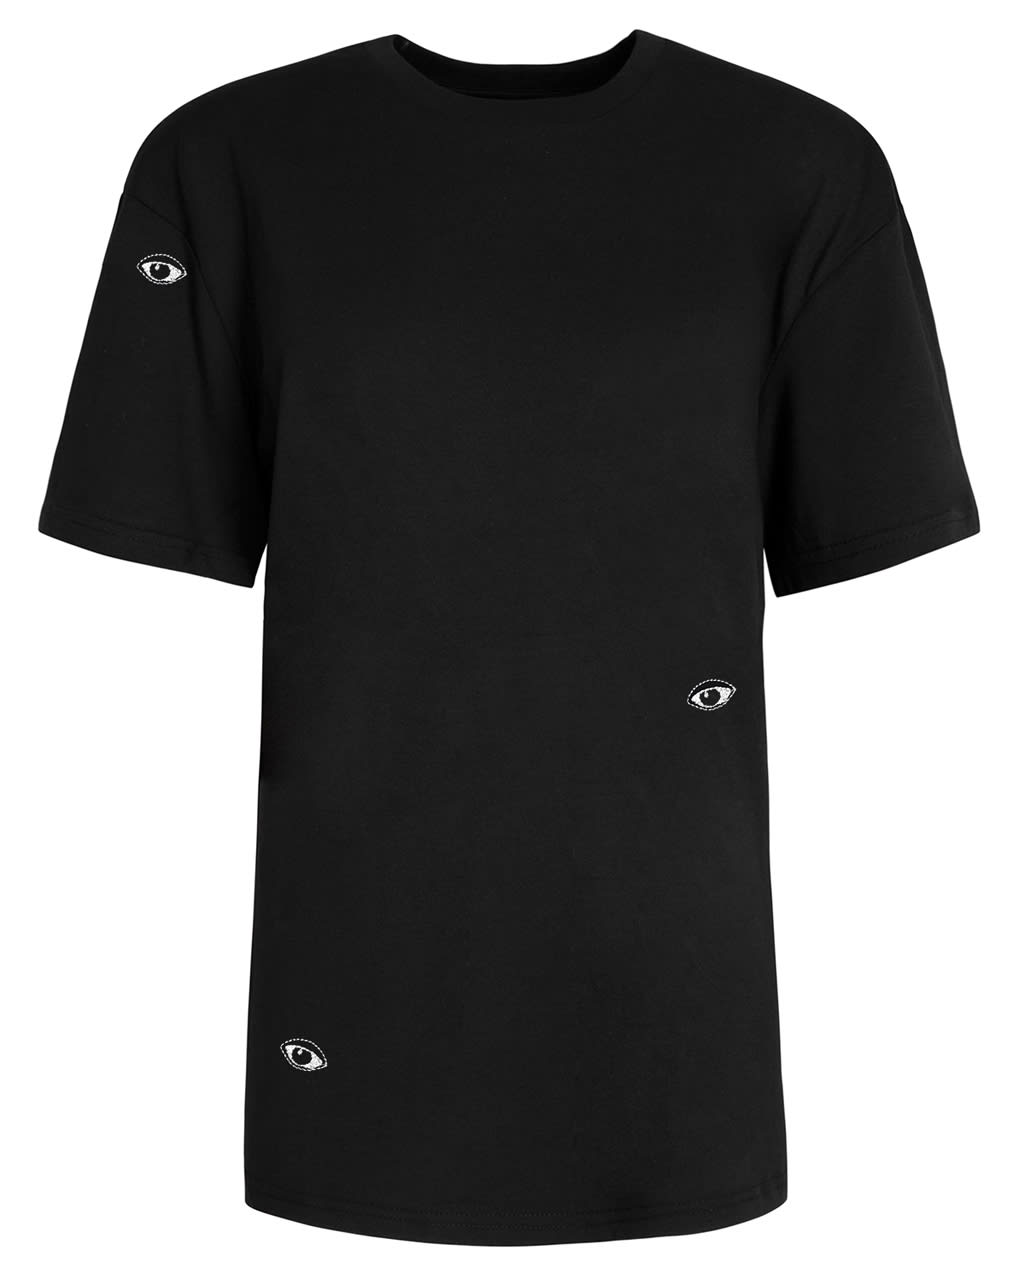 Eyes Embroidered T-Shirt Black